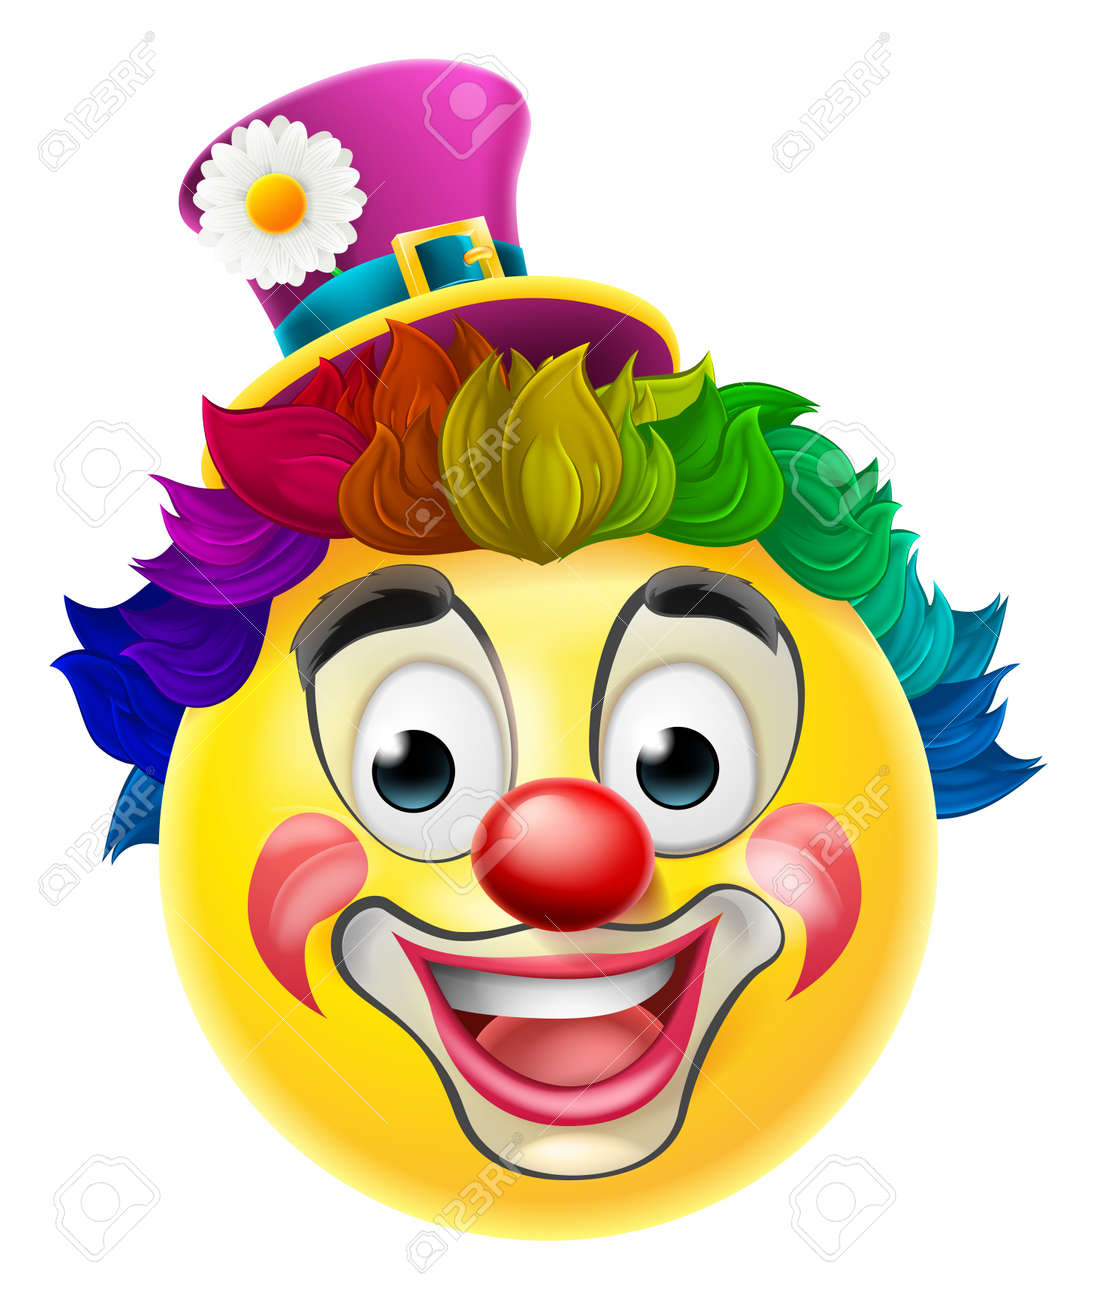 A Clown Cartoon Emoji Emoticon Smiley Face Character With A Red